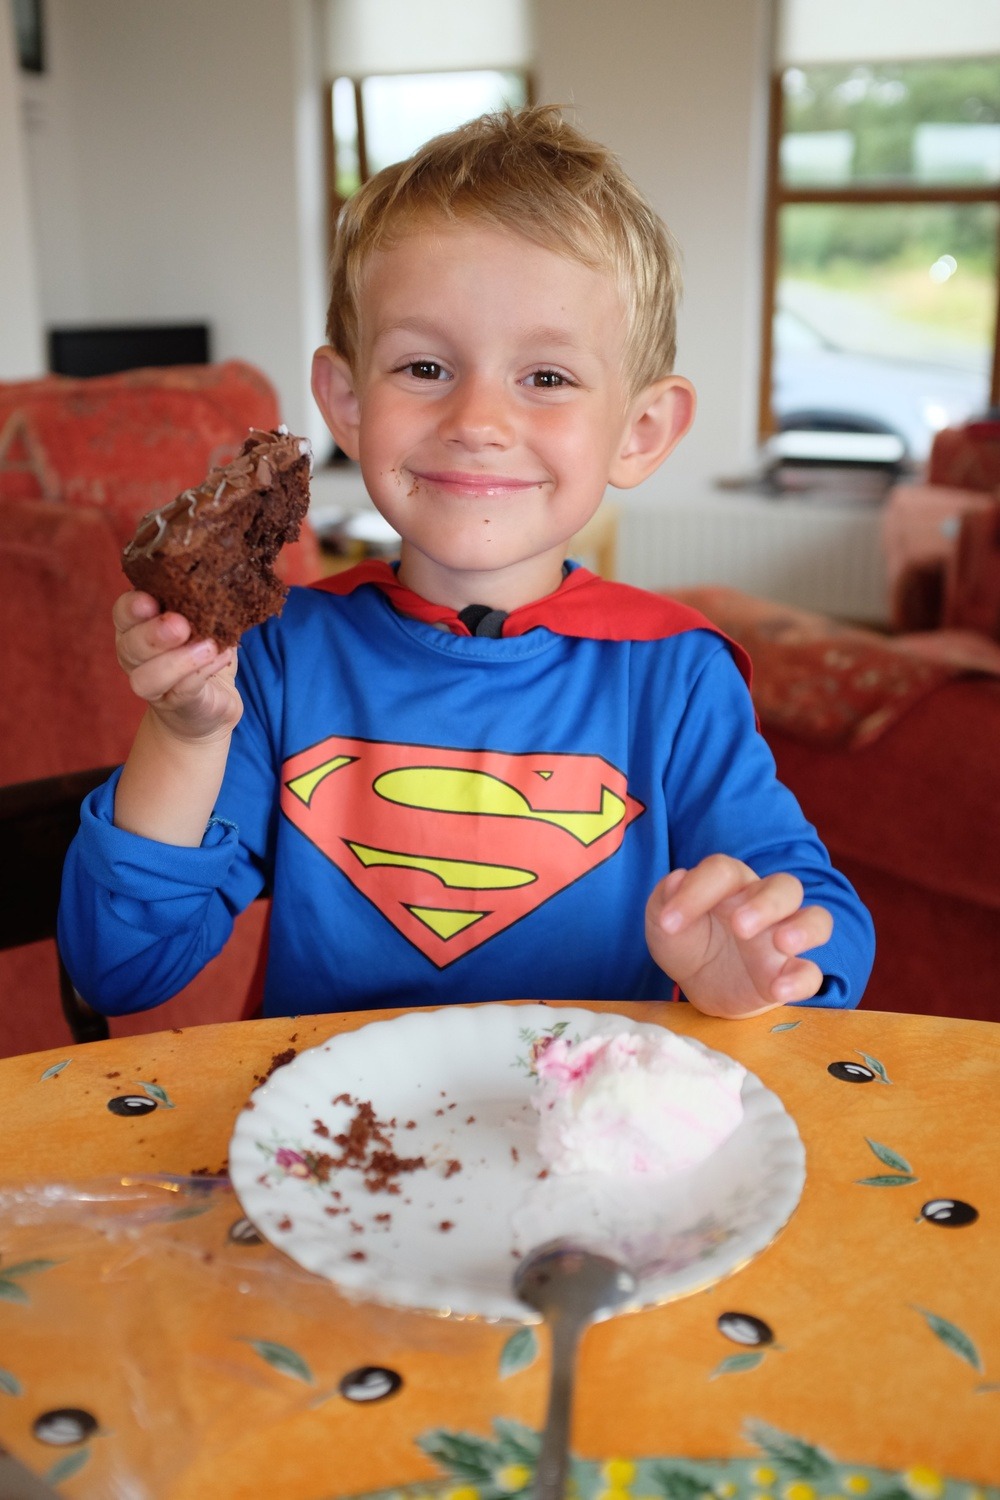 Kian loving his slice of chocolate cake